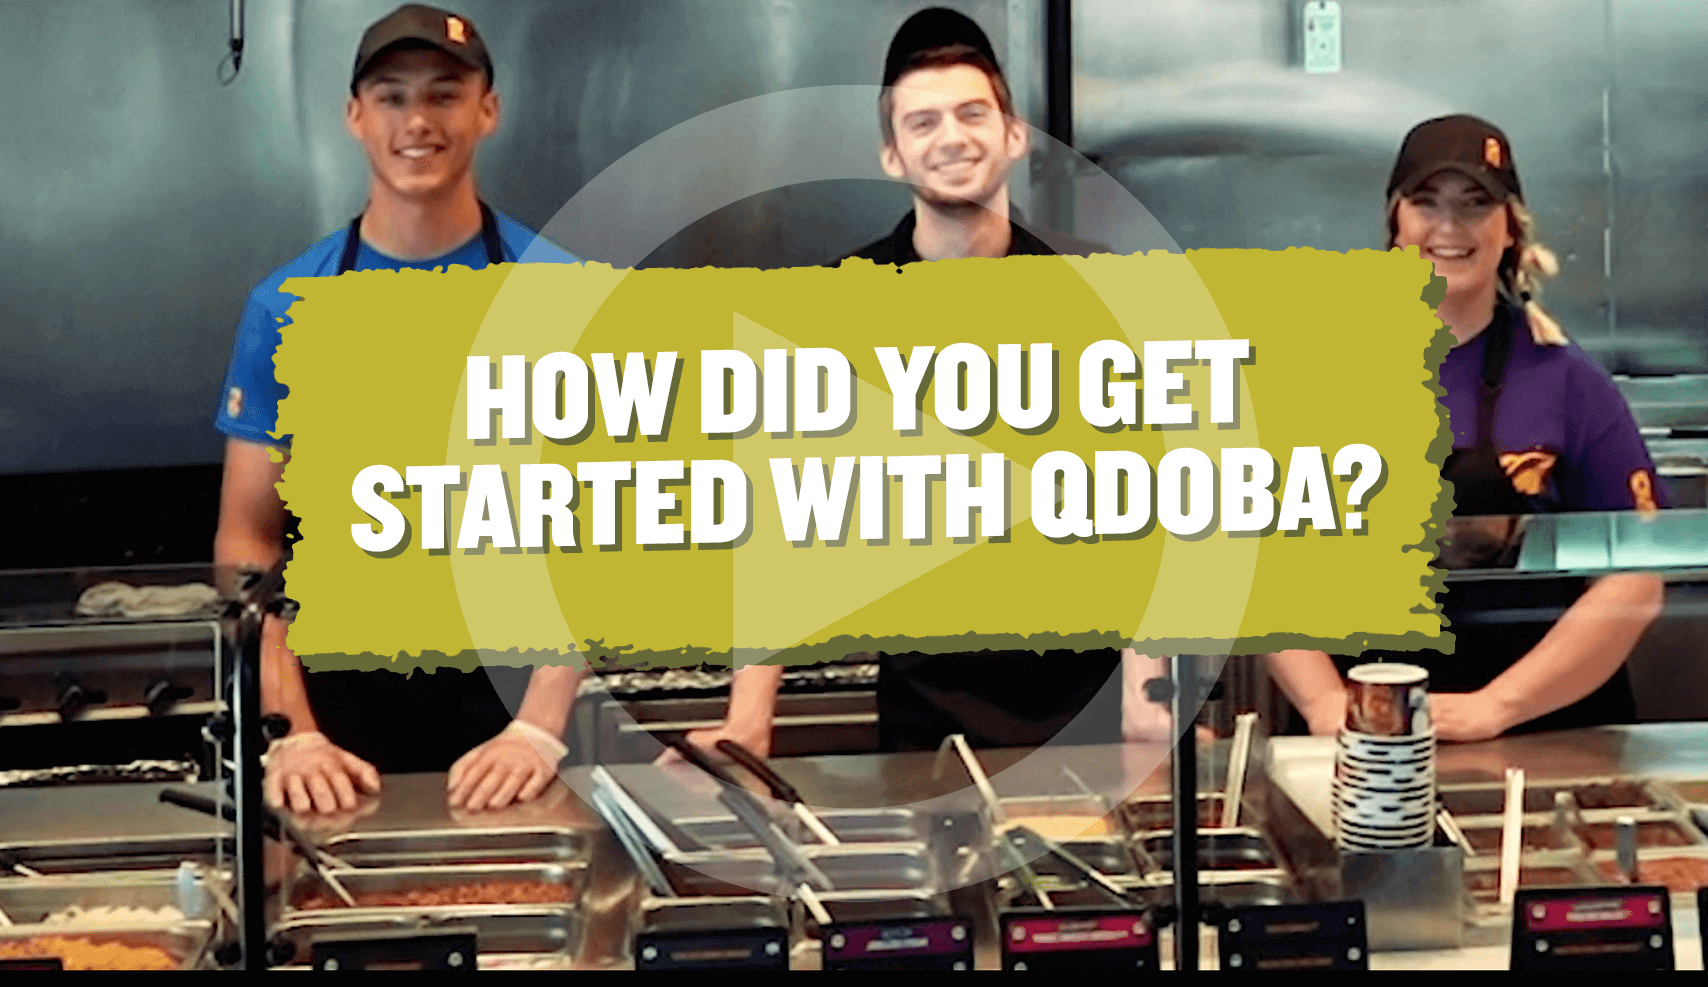 How did you get started why QDOBA?